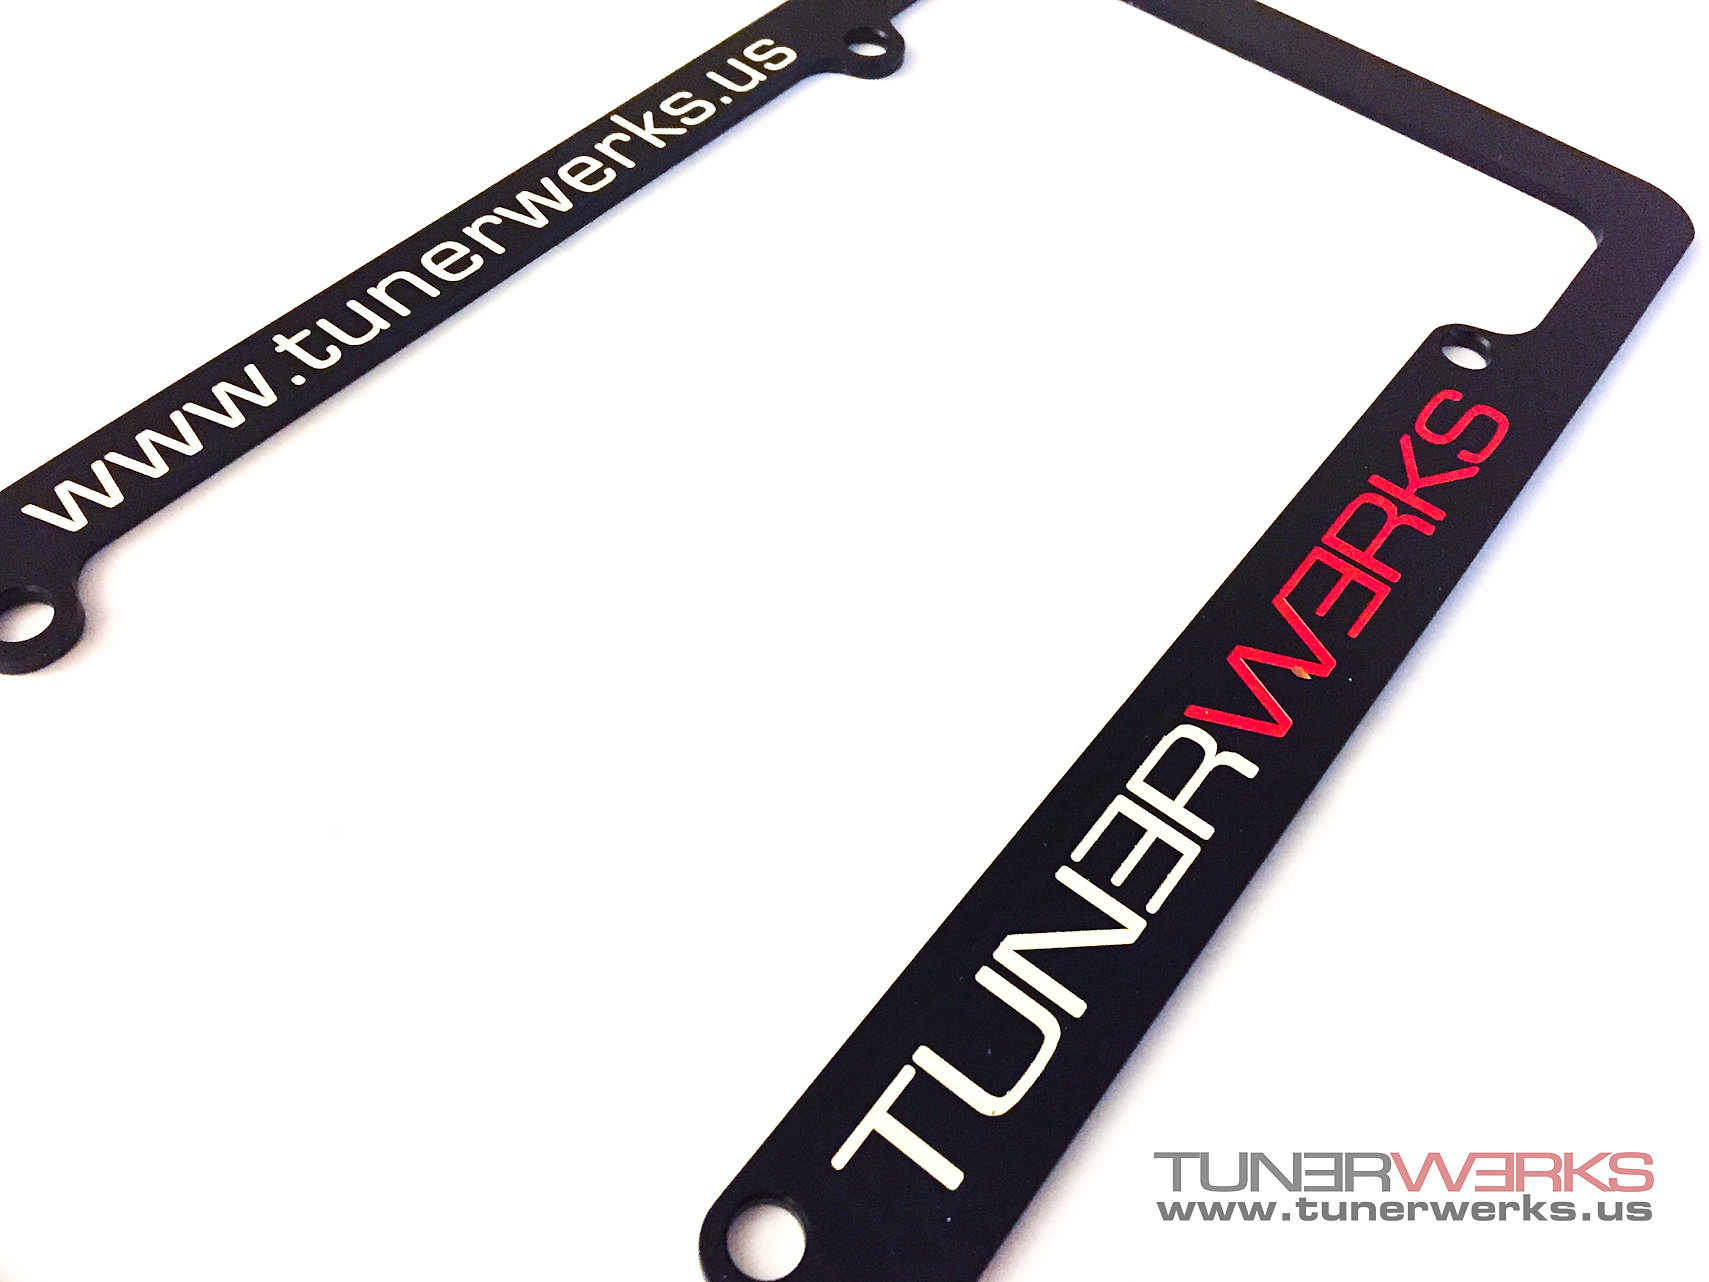 Aluminum License Plate Frame >> TunerWerks - ECU Tuning Distributor for European Cars | Aluminum License Plate Frame